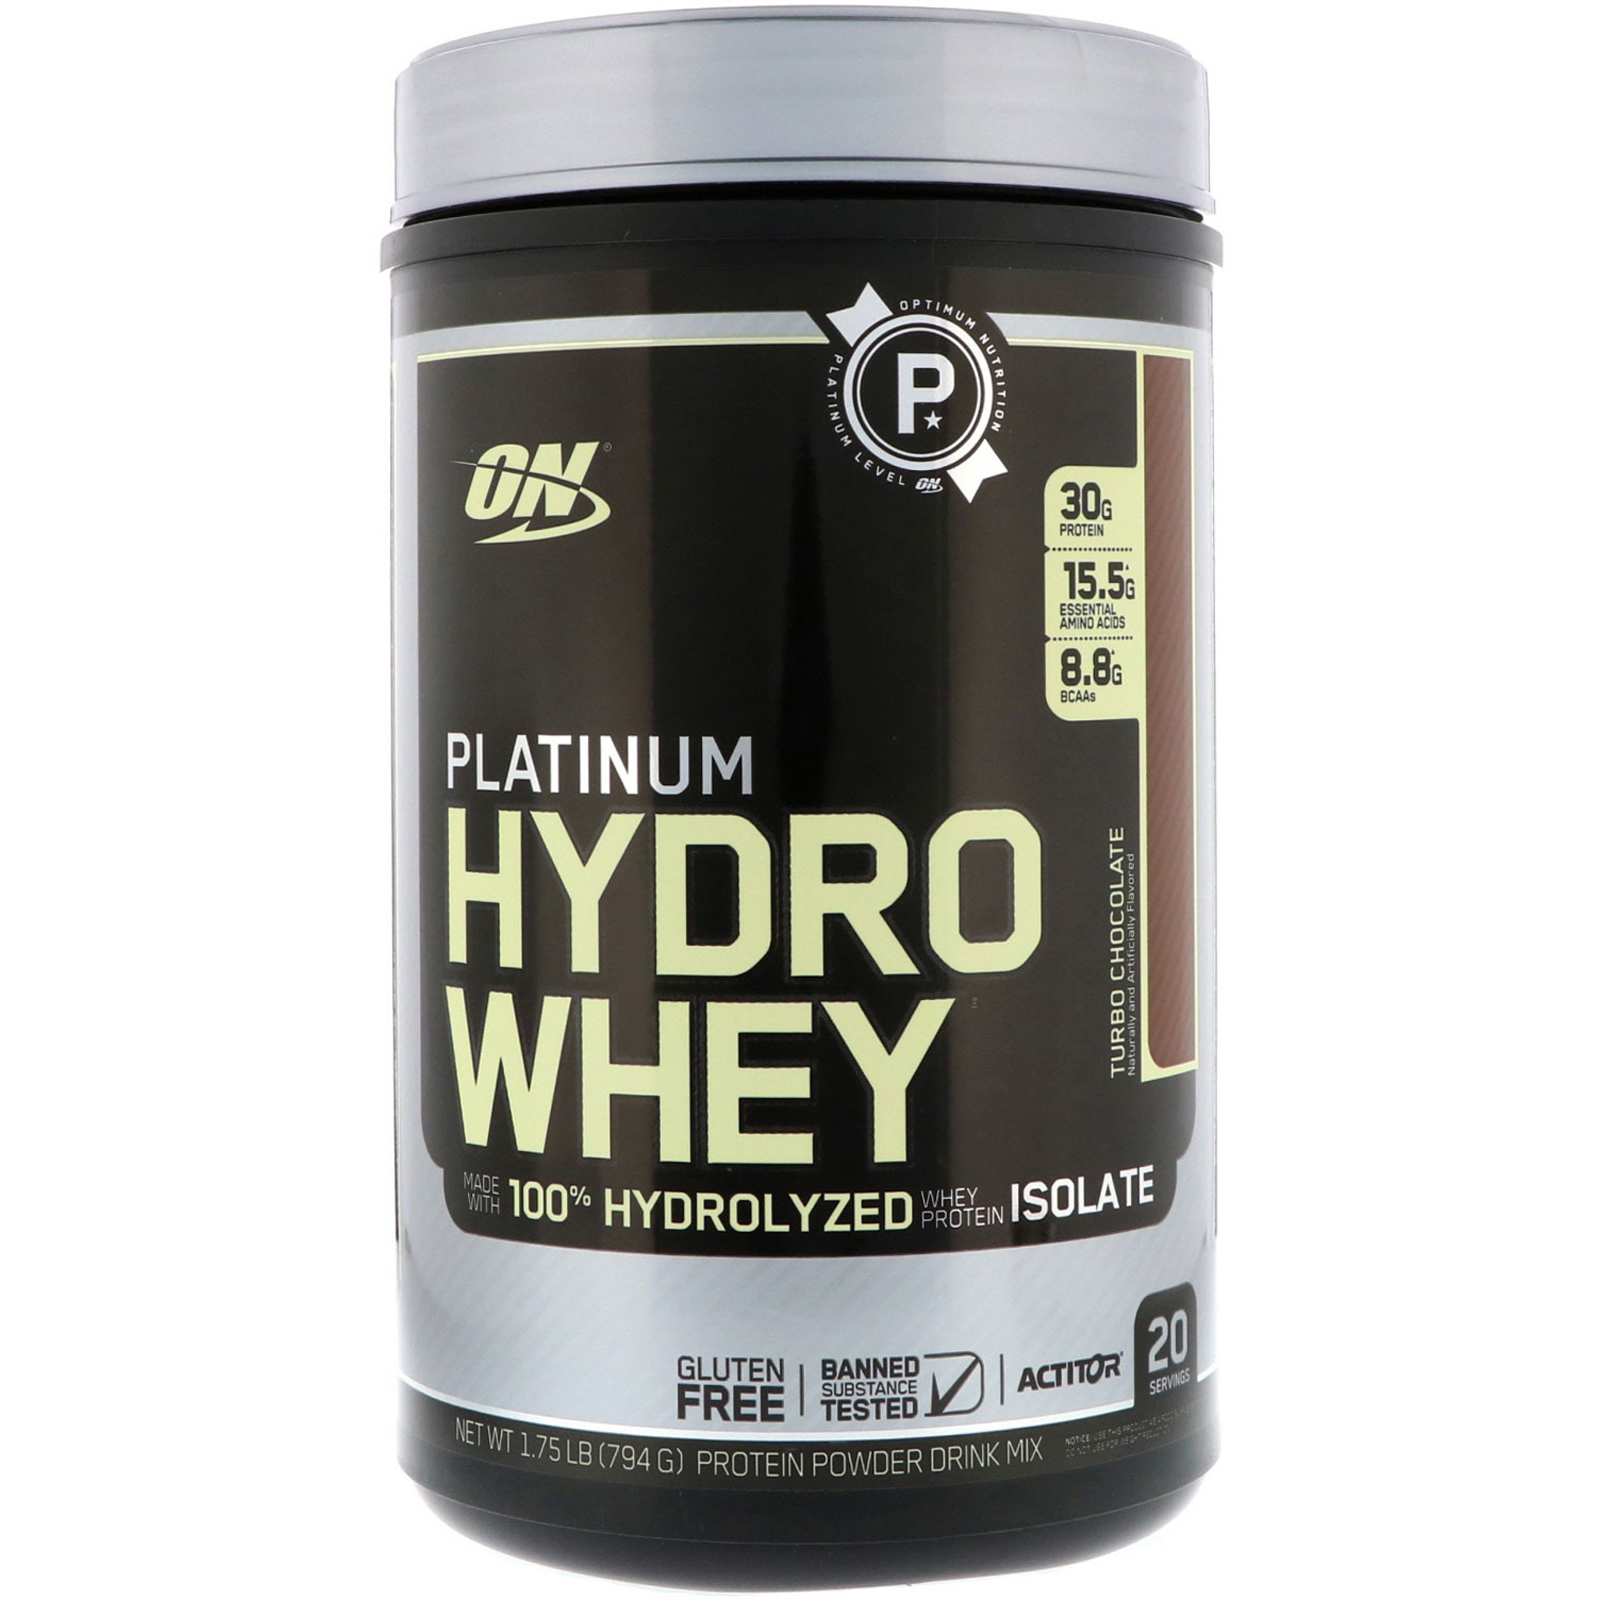 Platinum hydrowhey vs. gold standard whey - which protein wins?